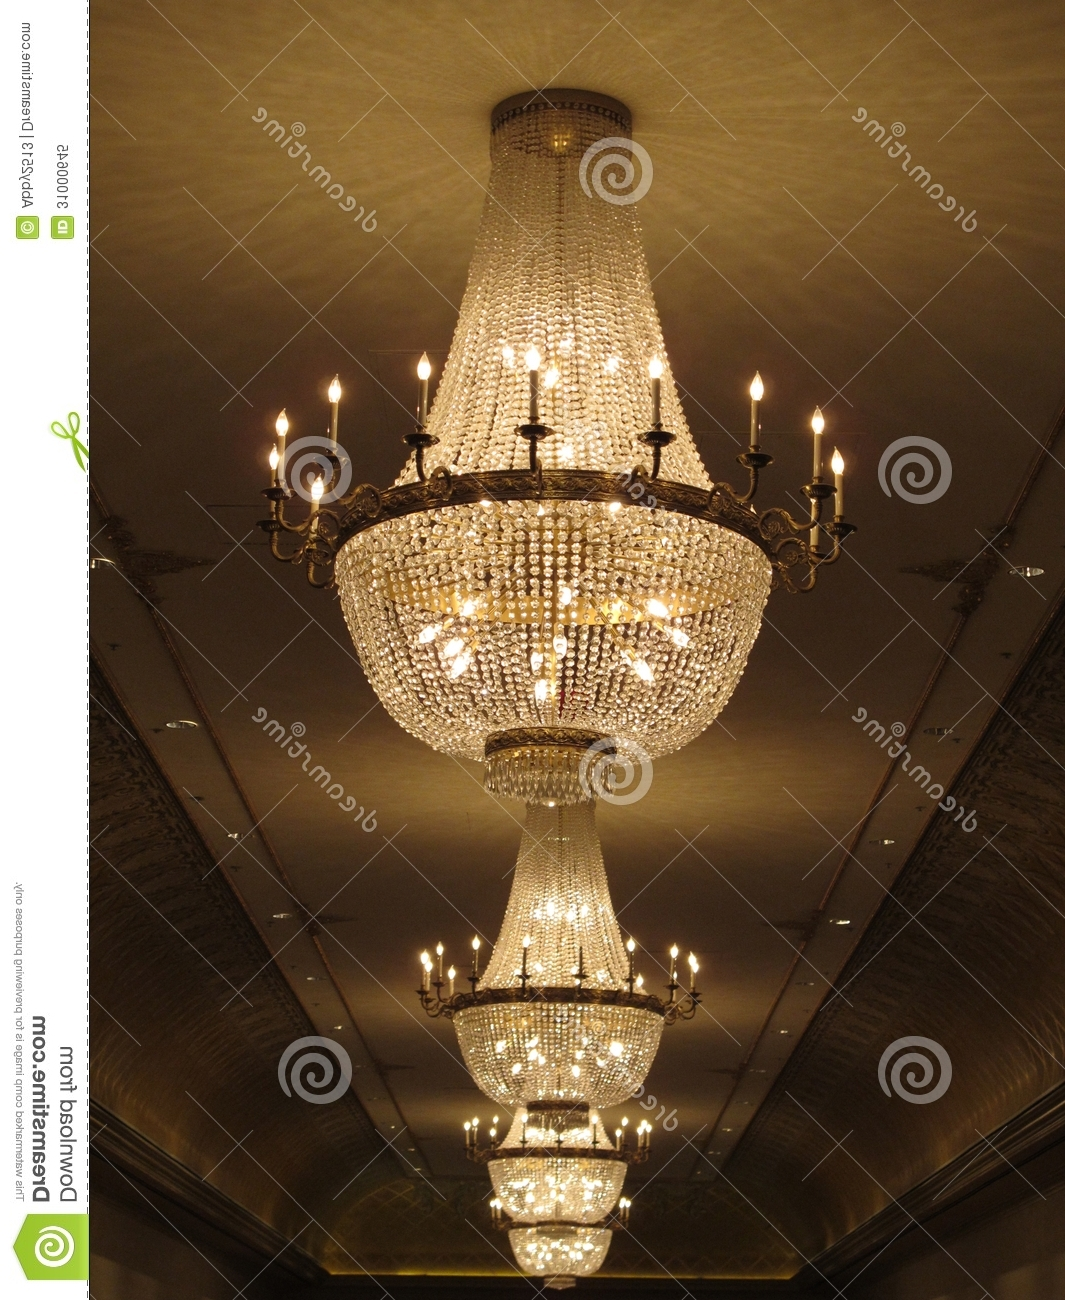 Ballroom Chandeliers Regarding Most Recent Gorgeous Crystal Chandelier Stock Image – Image Of Candles, Assets (View 4 of 20)